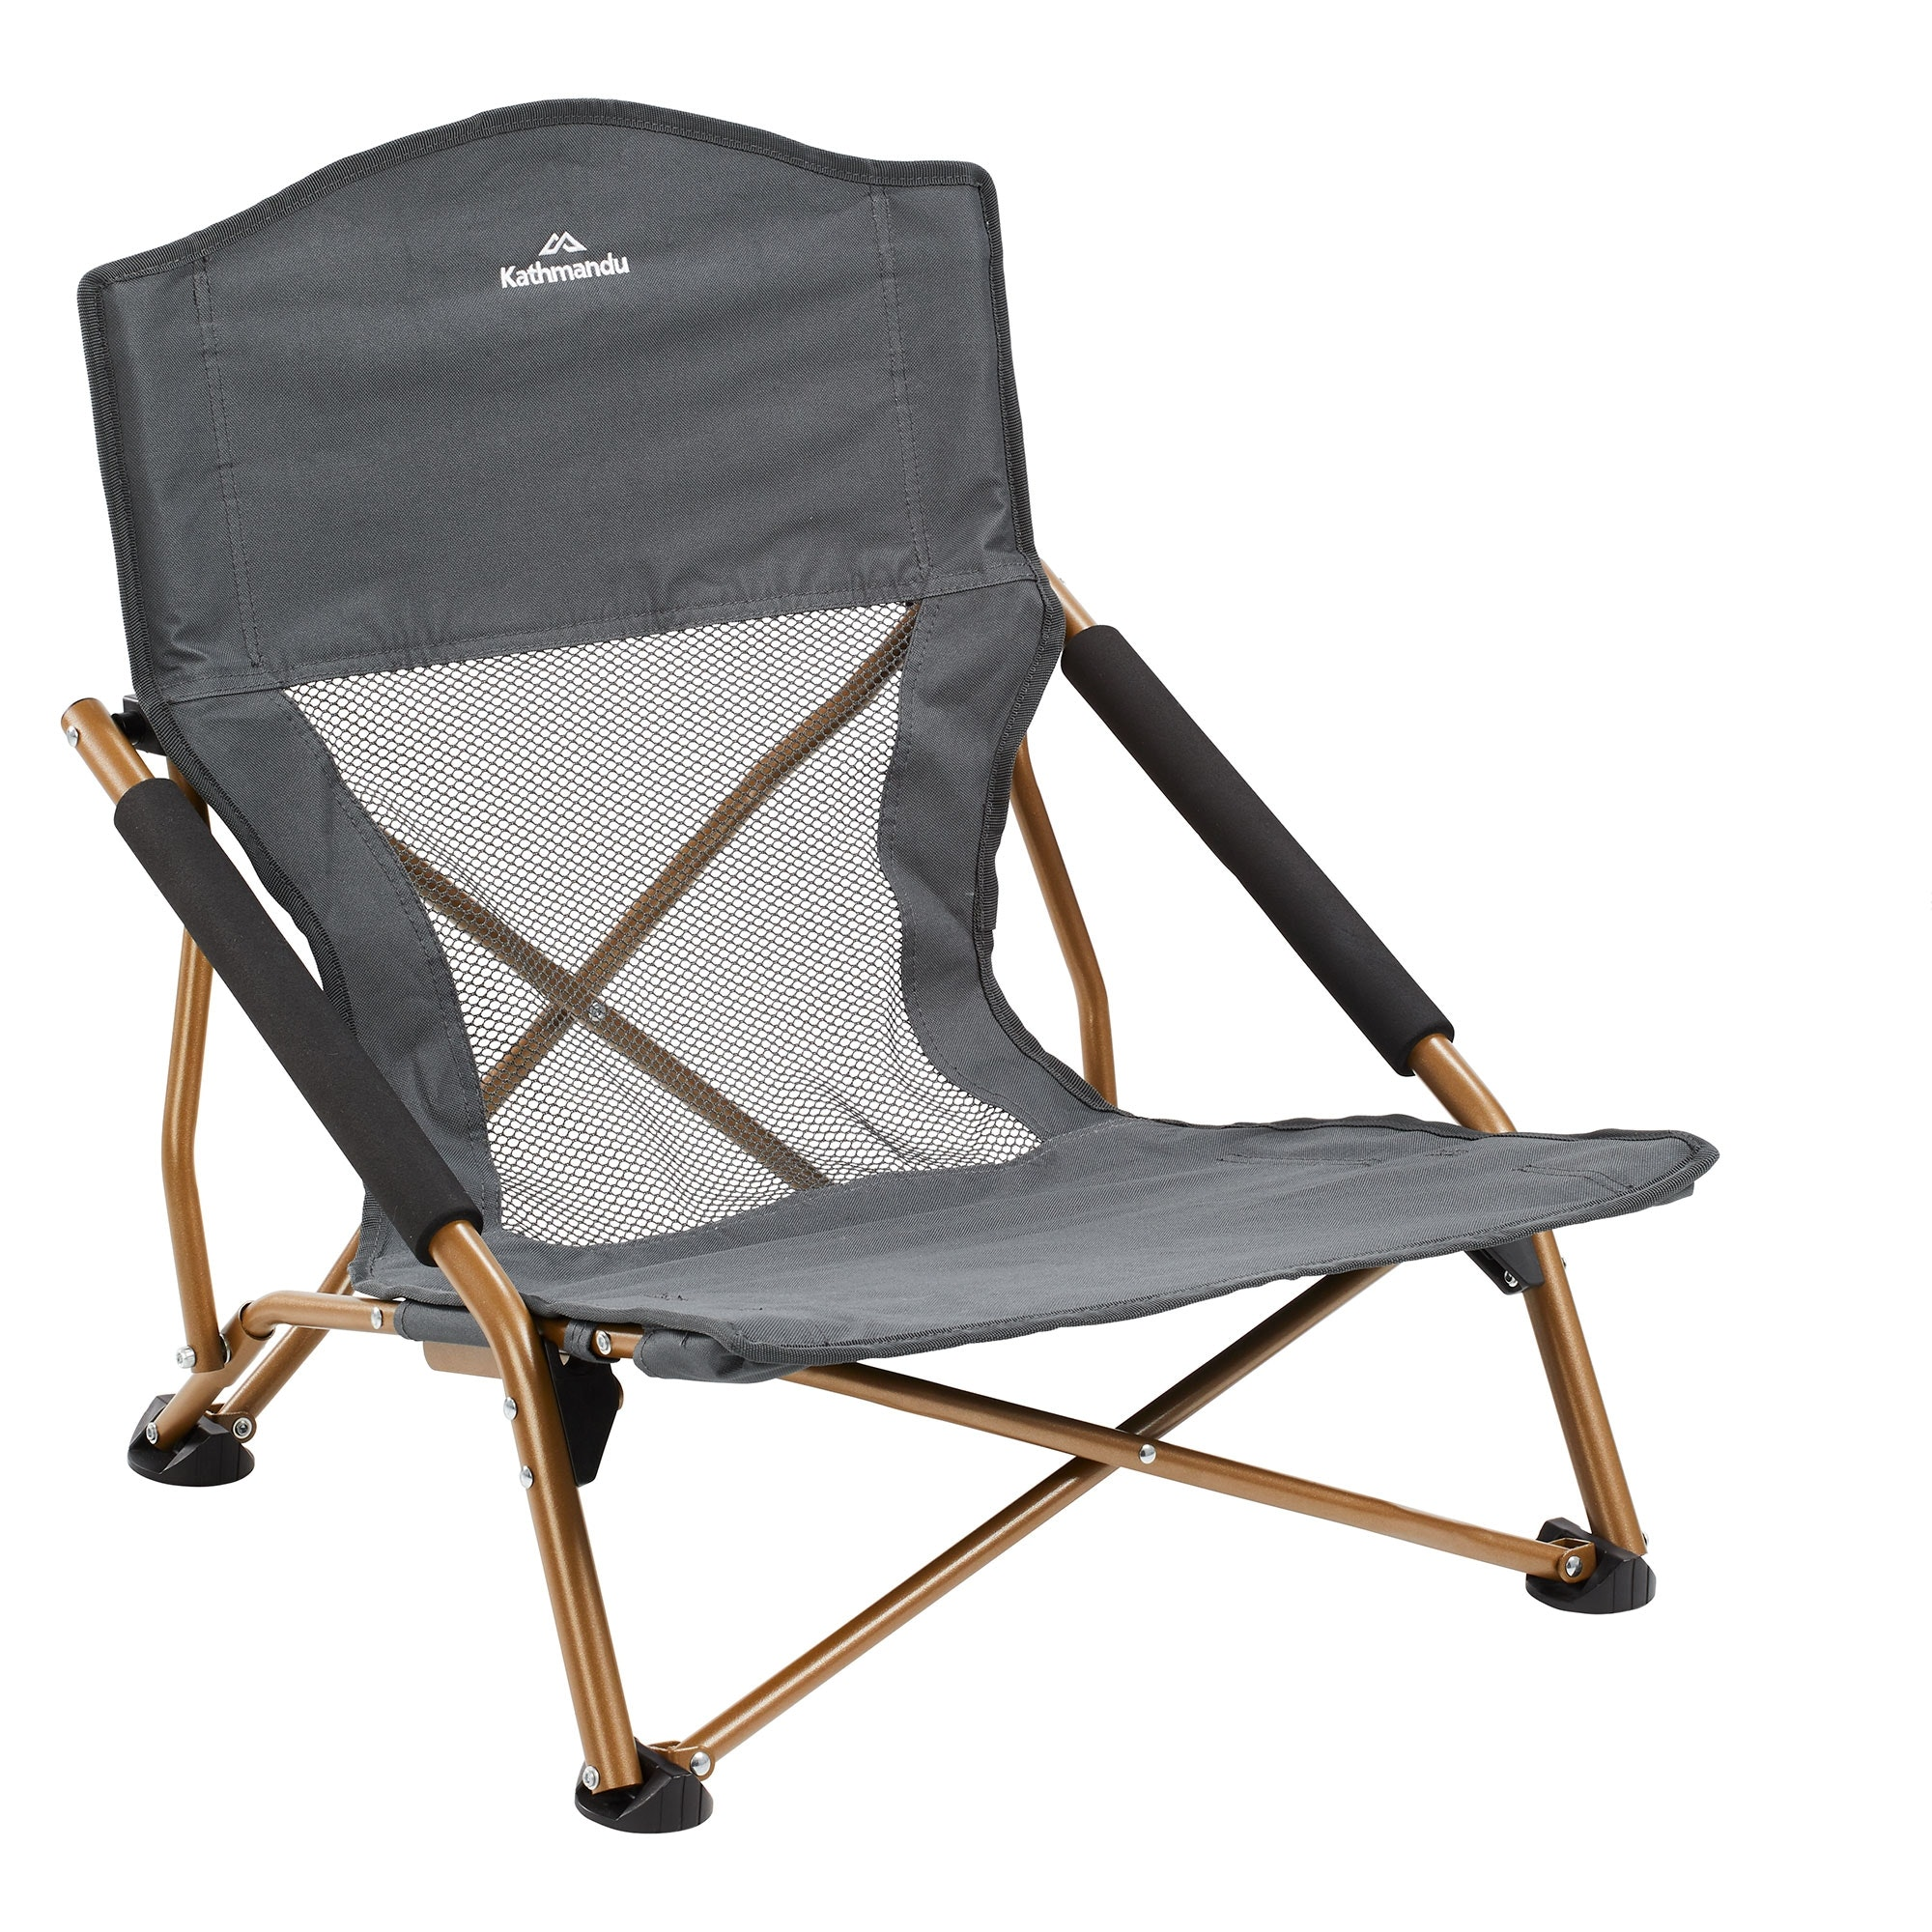 Most Comfortable Camping Chair Camping Chairs Outdoor Folding Lightweight Picnic Chairs Au